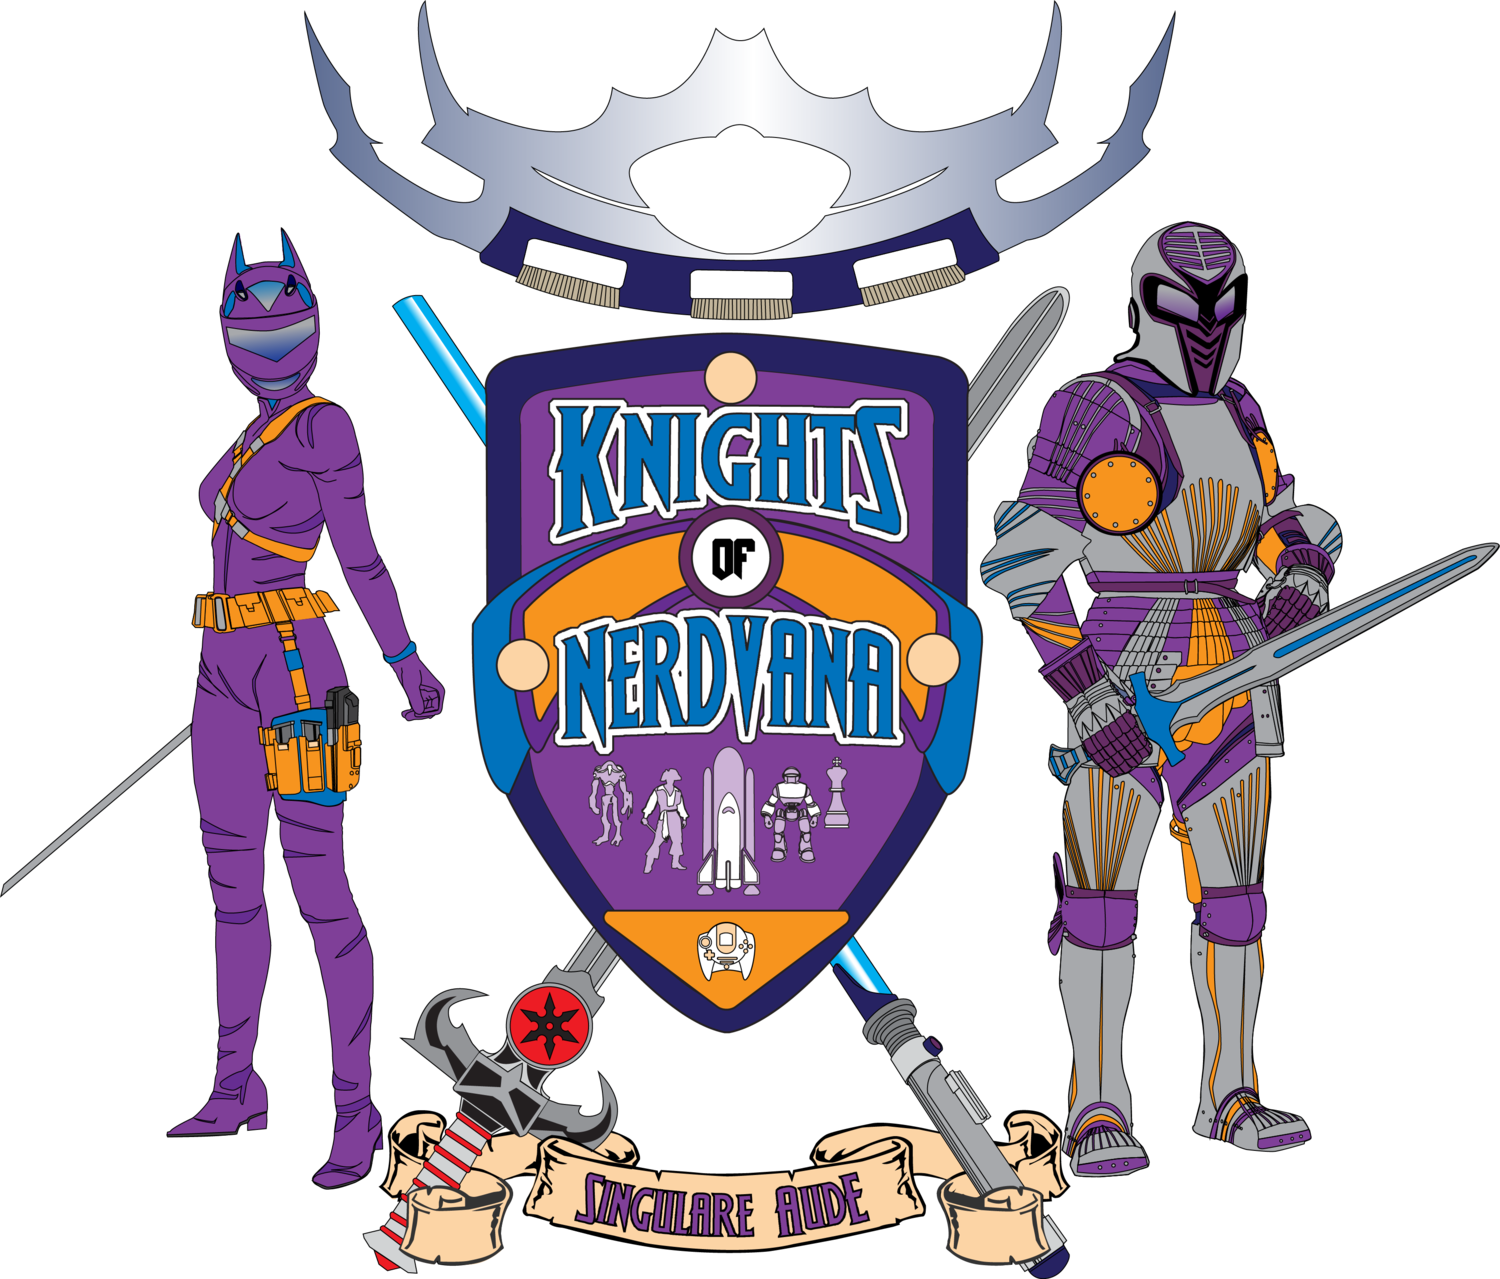 Knights of Nerdvana